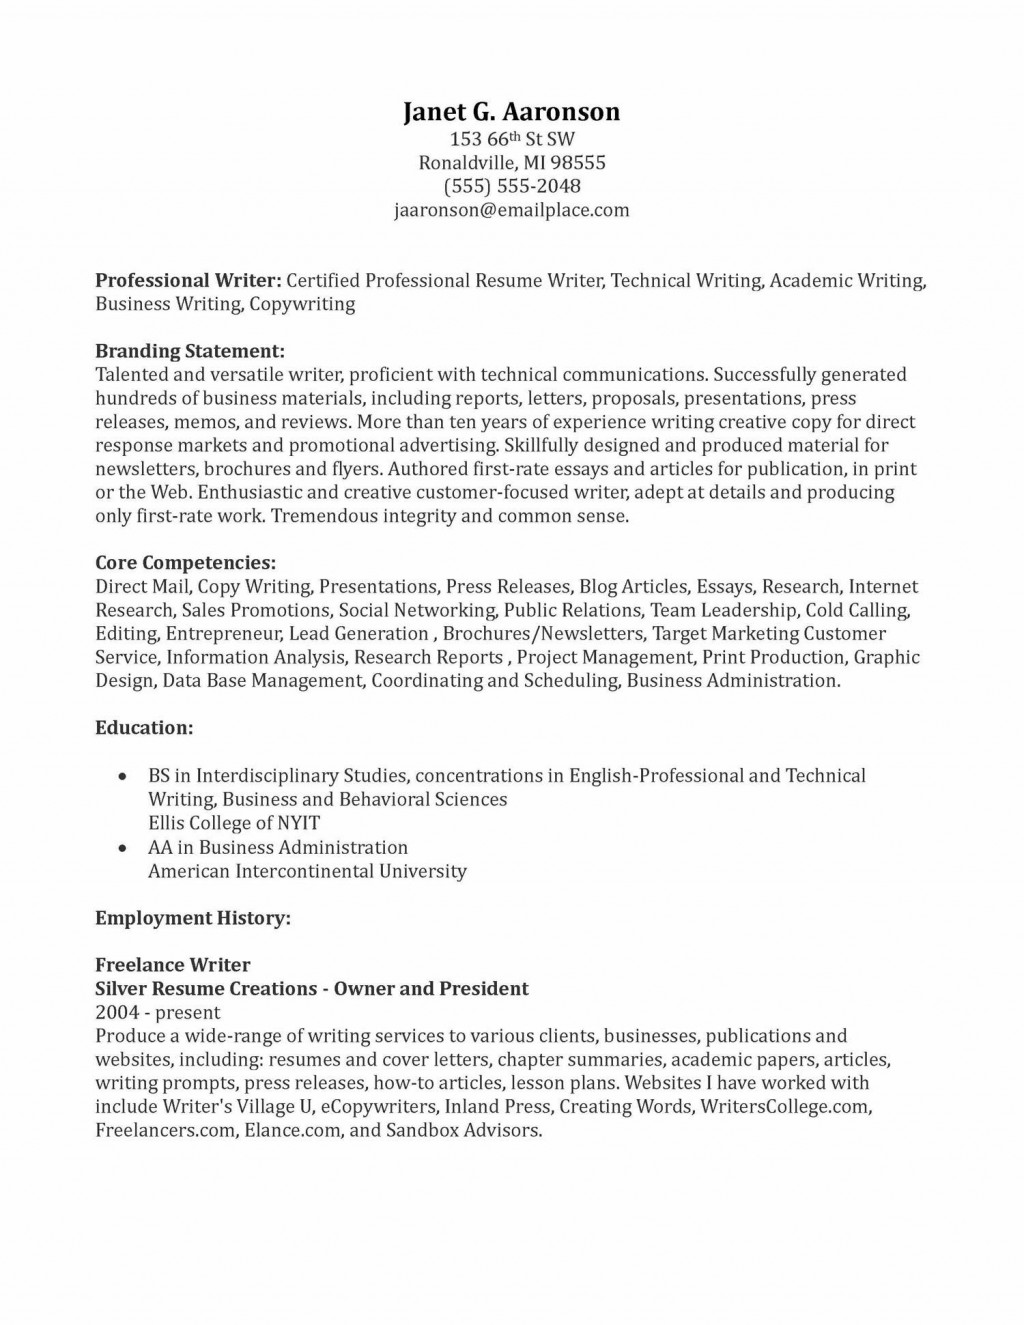 006 Academic Essays Online Writing Freelance Professional Cv Pdf Example Essay Writ College Jobs Uk Fearsome Read Buy Large